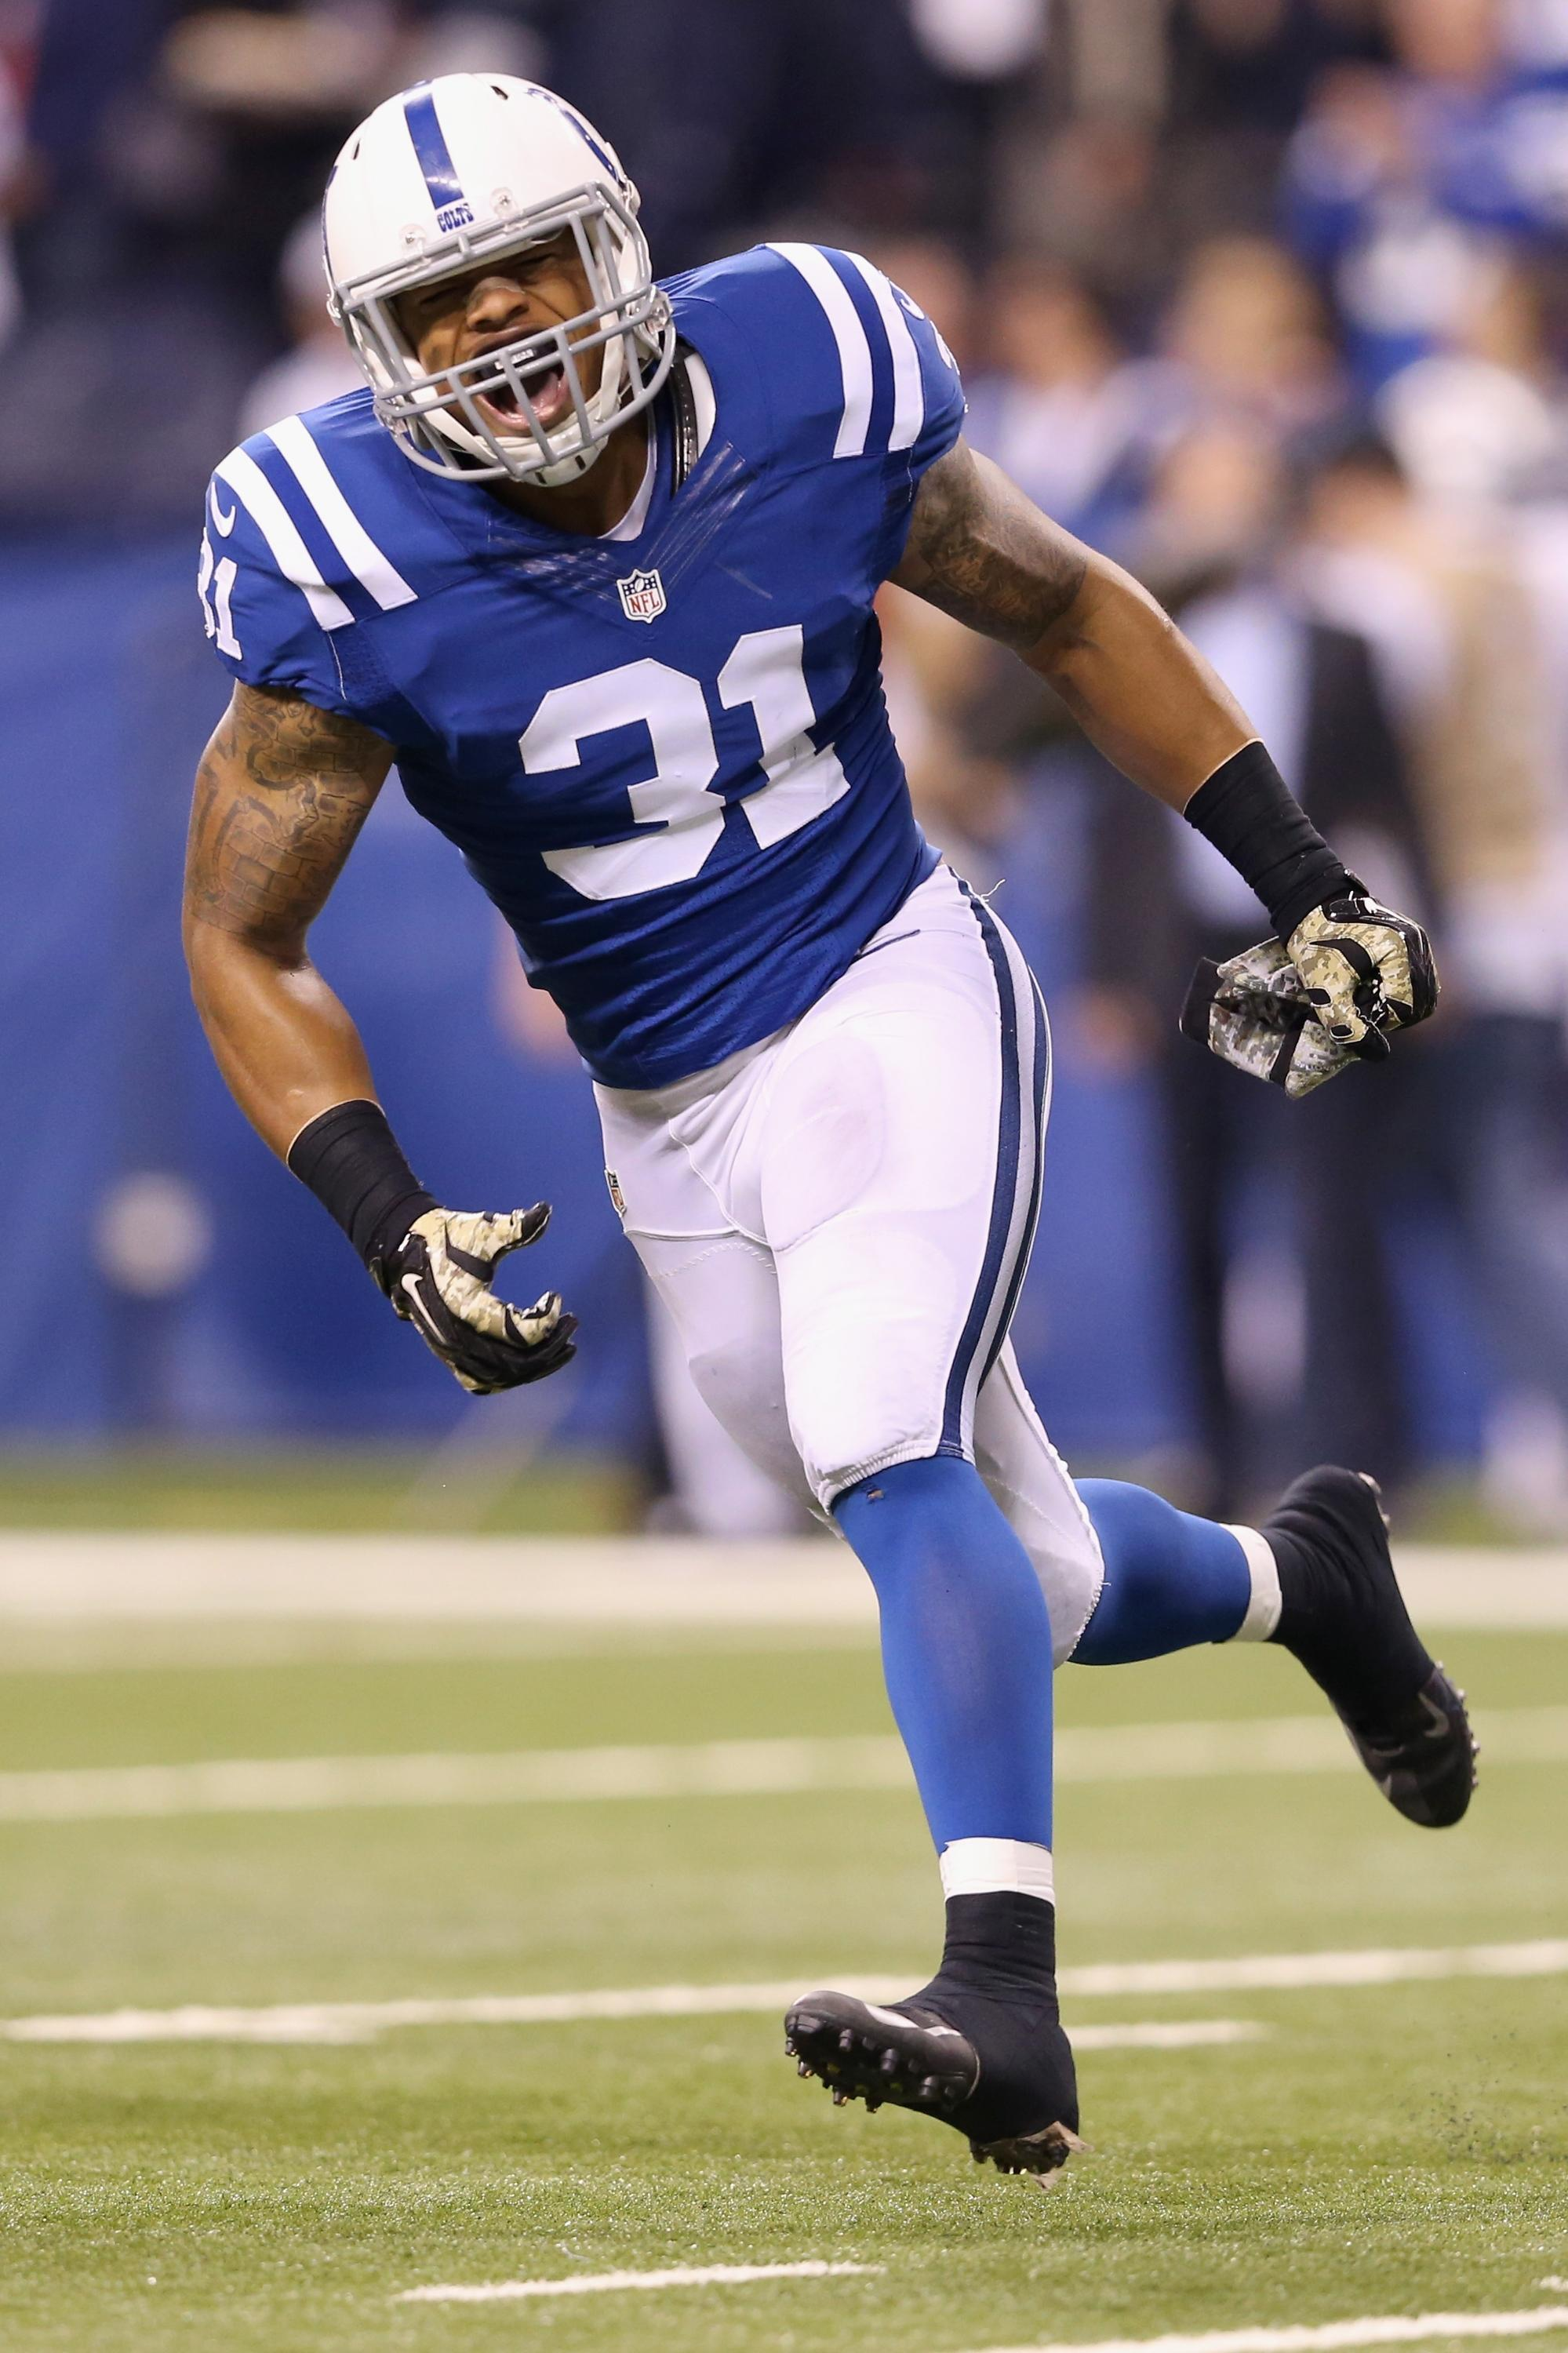 Colts safety Dewey McDonald drops easy pass on curious ...